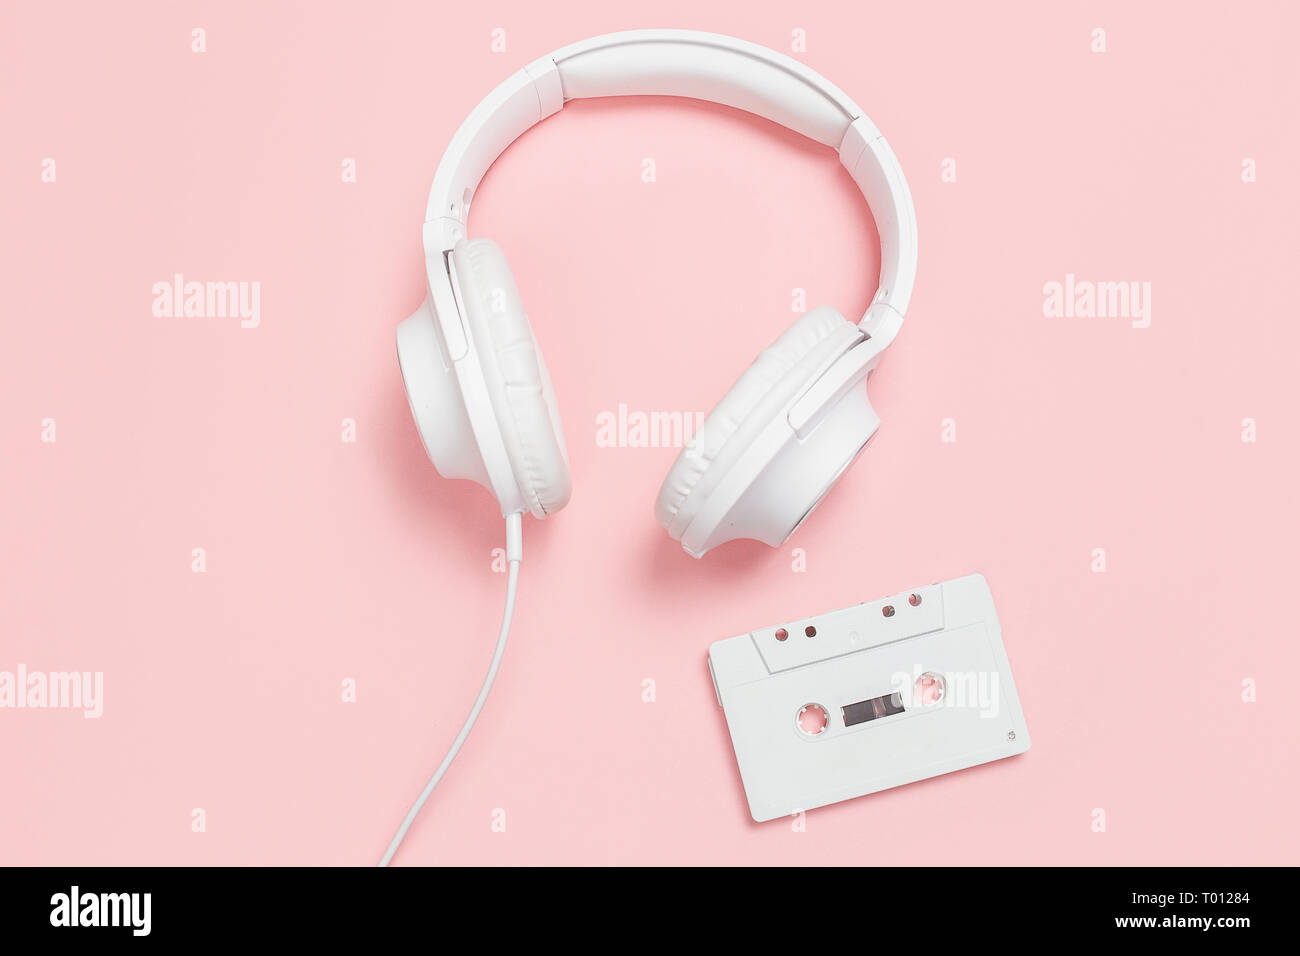 White cassette tape and headphones on a pink background. Party 90s concept. - Stock Image